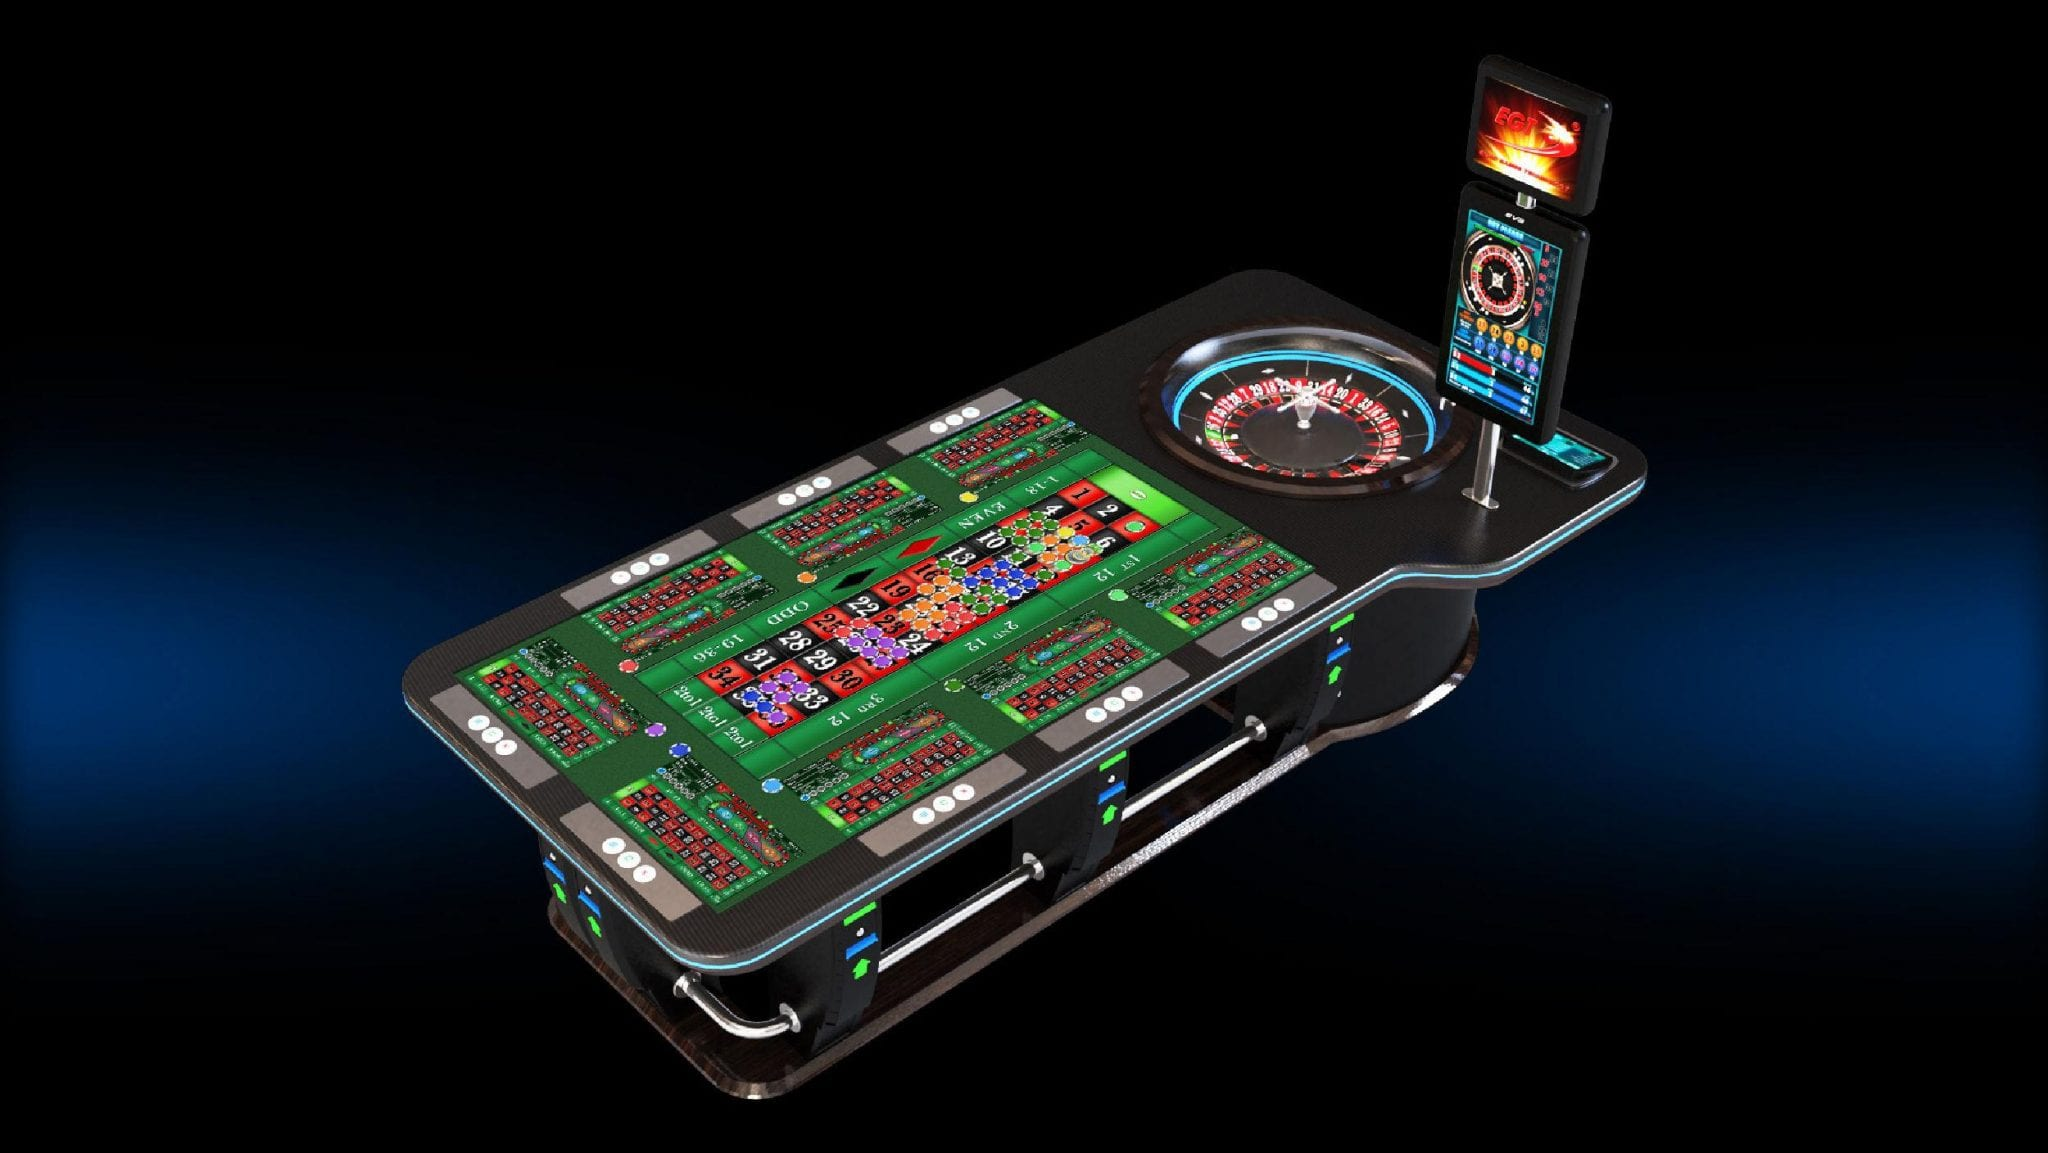 Zytronic technology EGT luxury touch screen roulette table